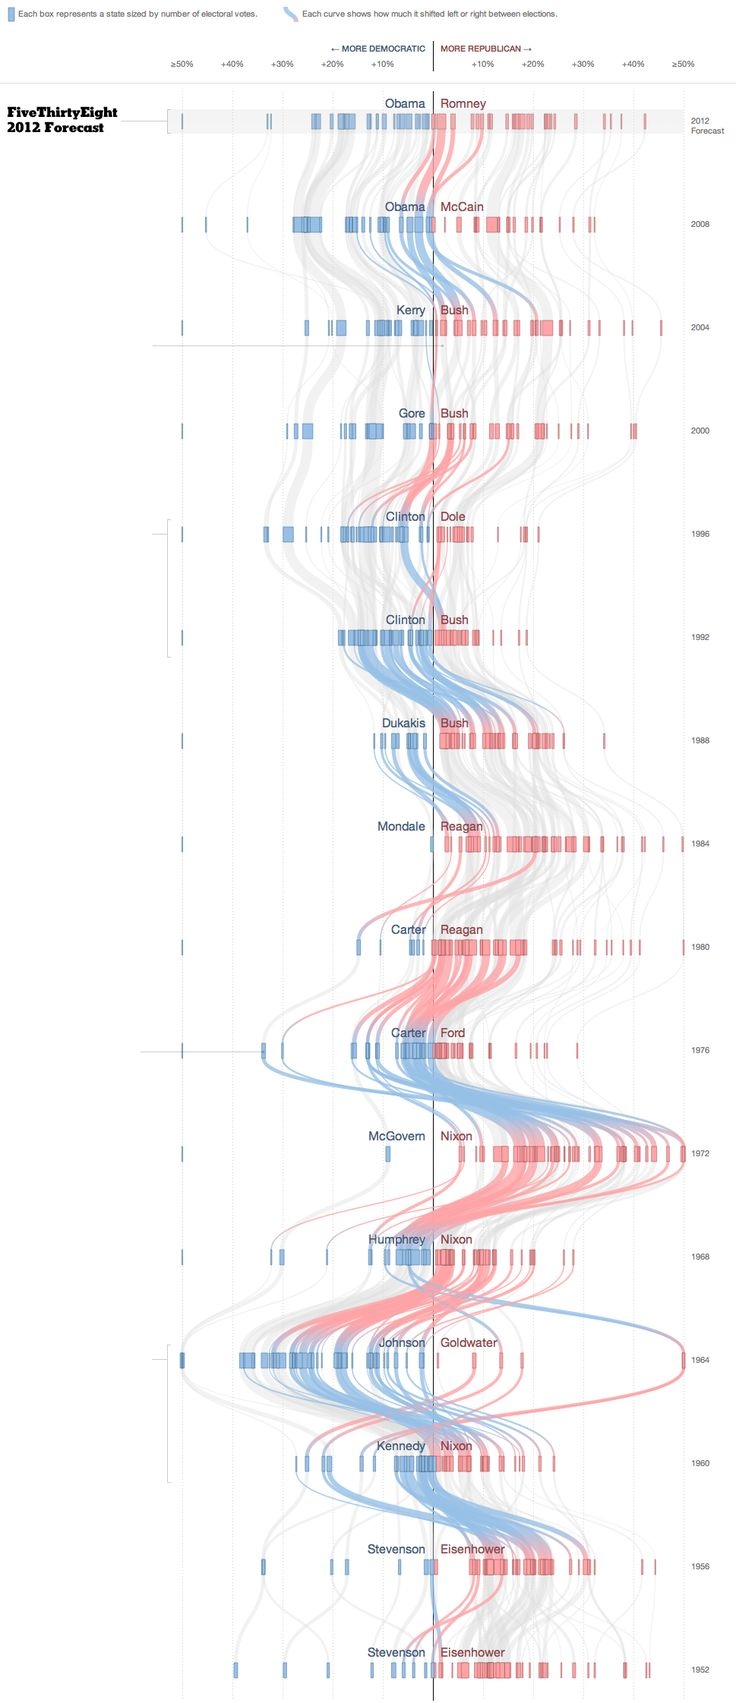 Very cool infographic on how Amercian states changed from have swung between Democrats and Republicans over the past 50 years.